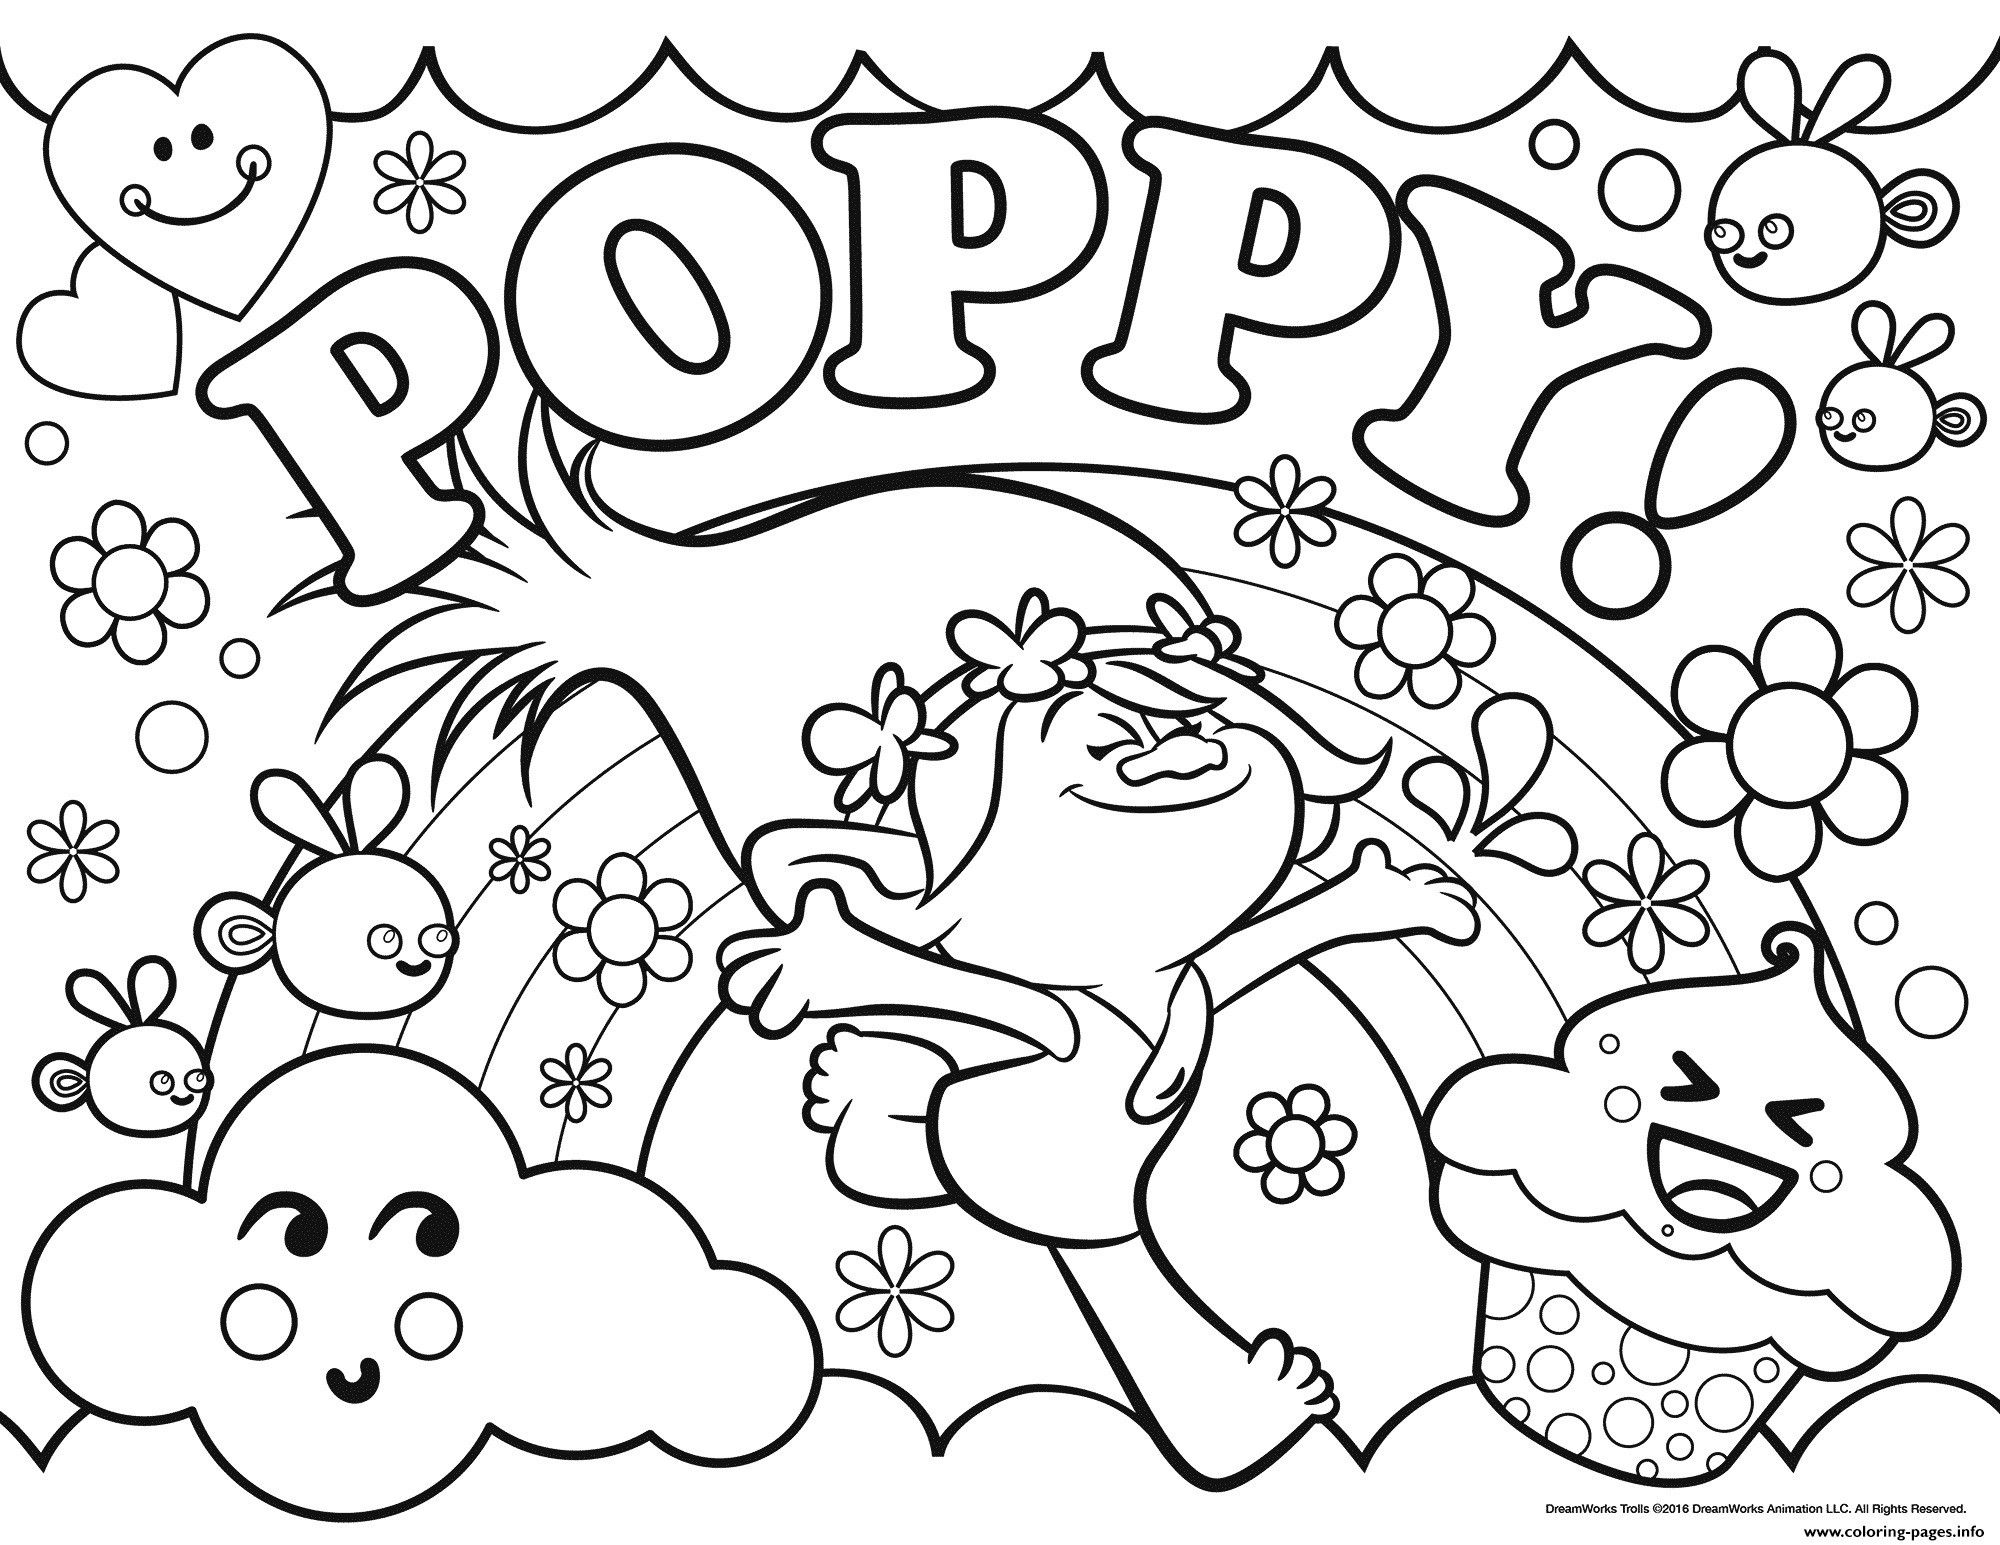 Free Trolls Colouring In Pages From The Thousand Photographs On The Net Regarding Free Trolls Colou Poppy Coloring Page Cartoon Coloring Pages Coloring Books